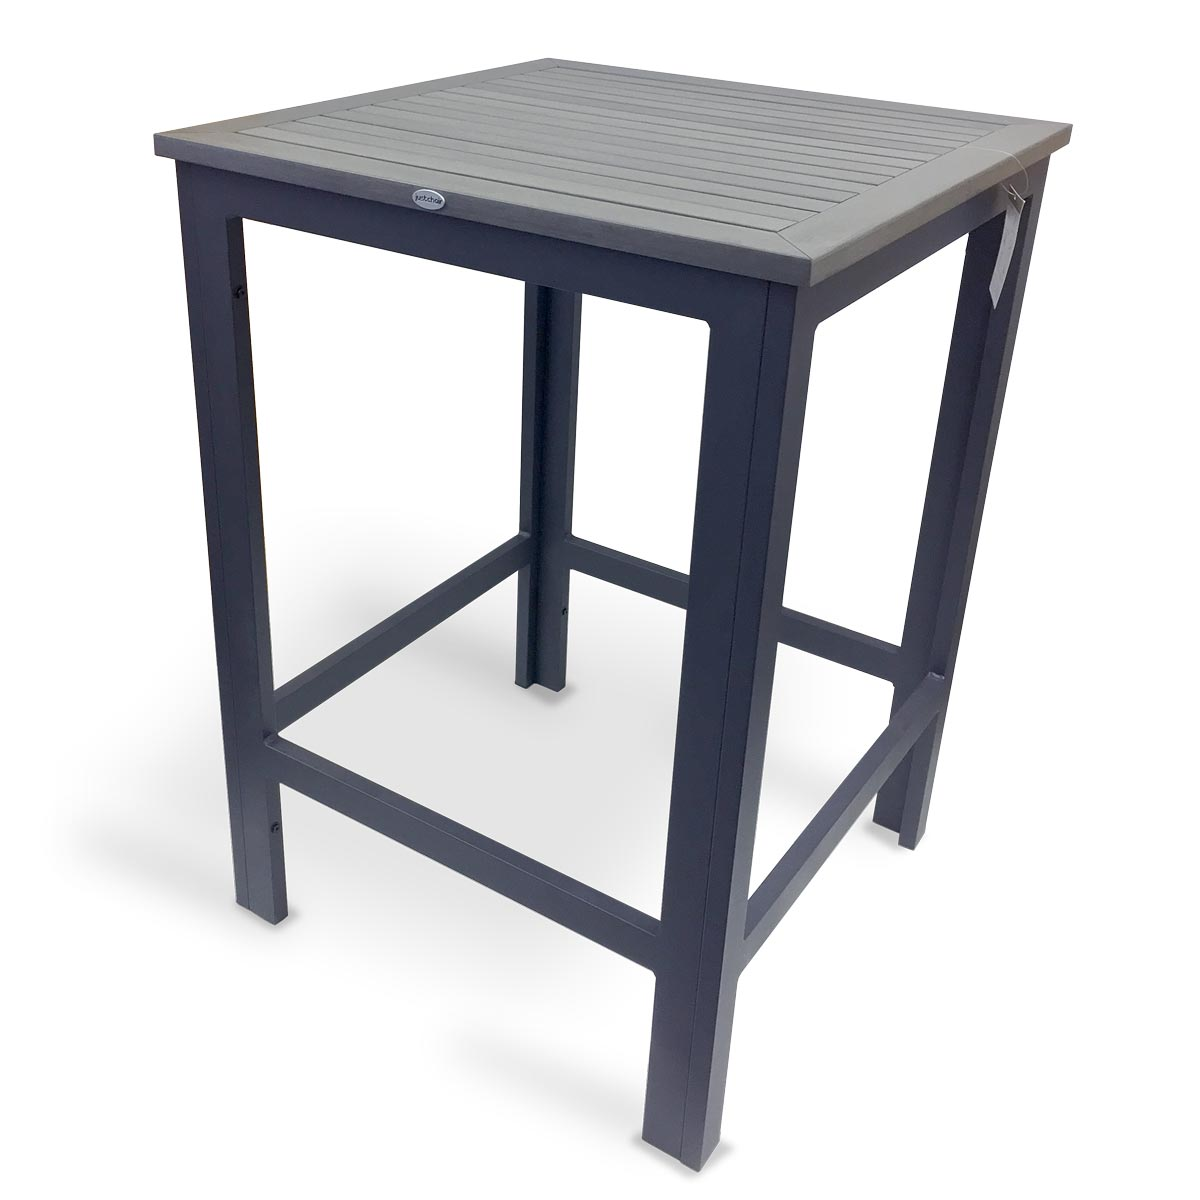 JustChair Manufacturing PW801TT-3030-BAR table, outdoor